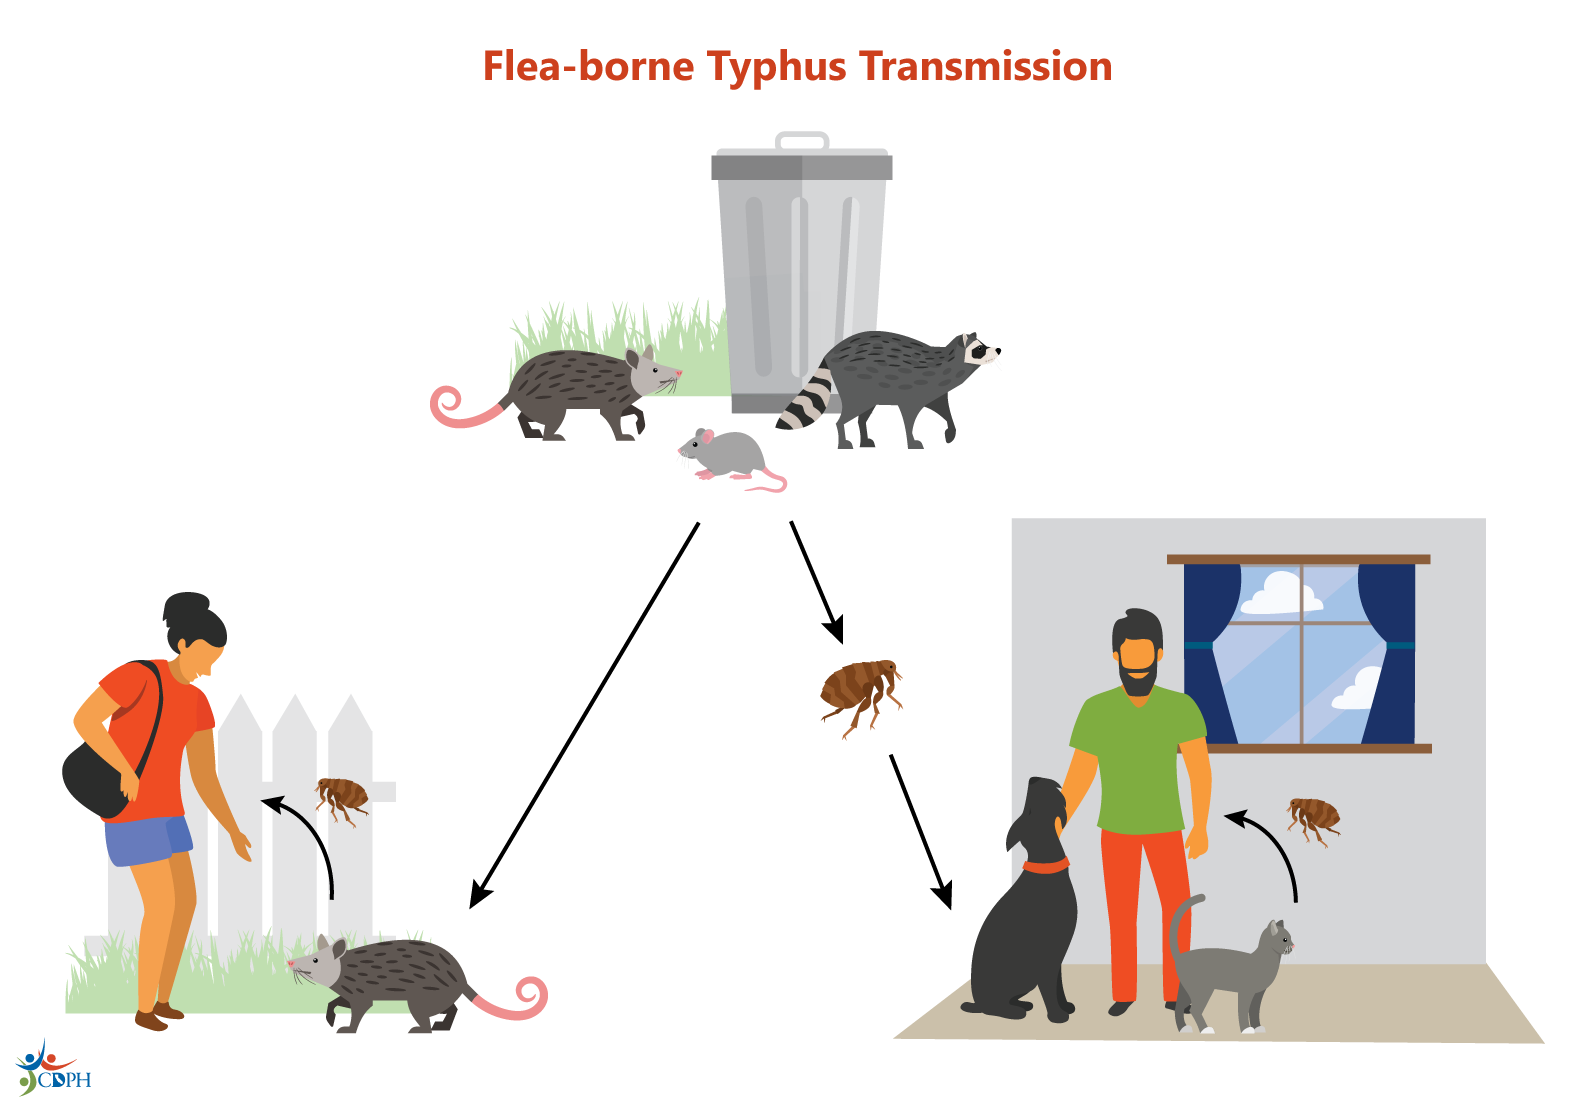 Flea-borne typhus transmission cycle showing fleas spreading bacteria from rodents to people